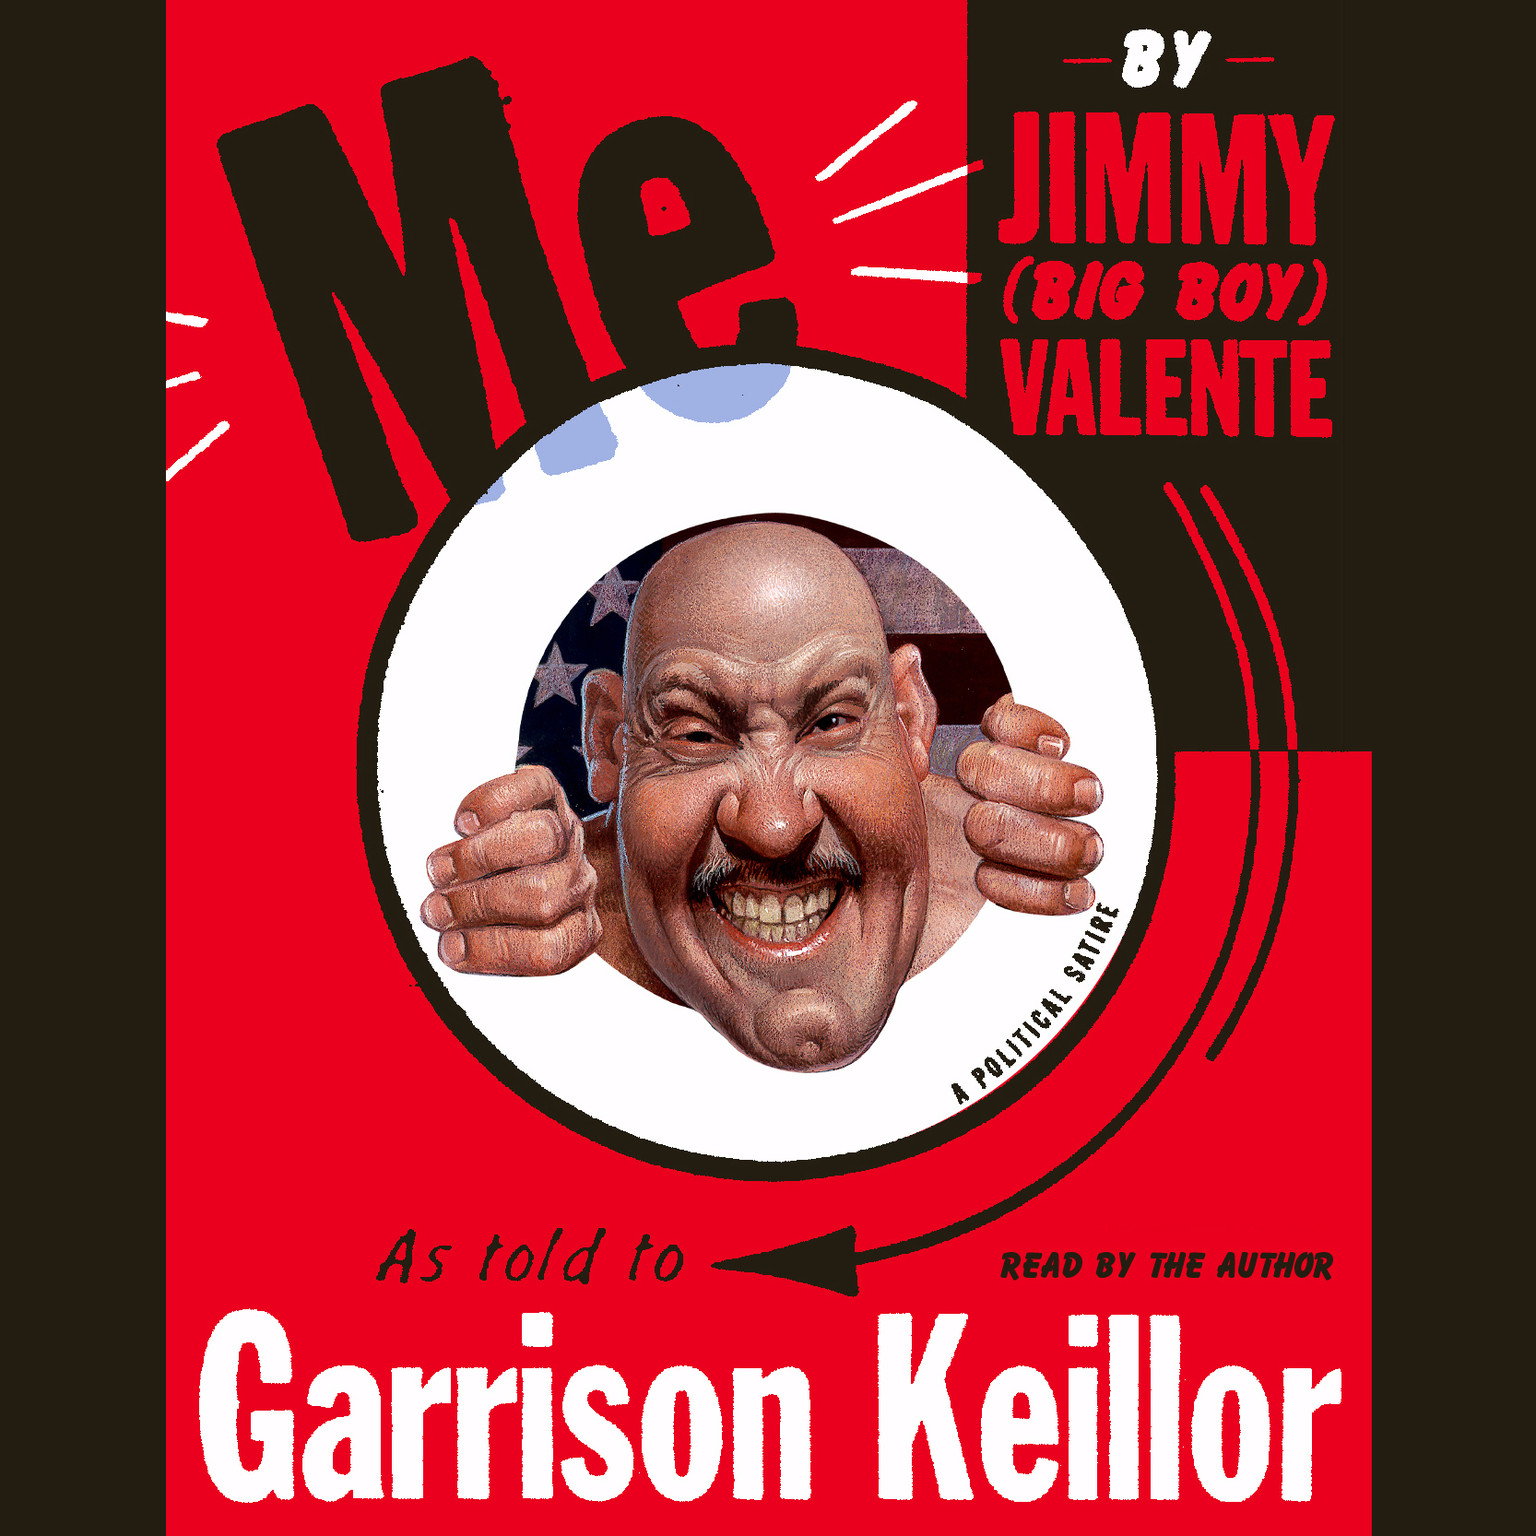 Printable Me: By Jimmy (Big Boy) Valente As Told to Garrison Keillor Audiobook Cover Art